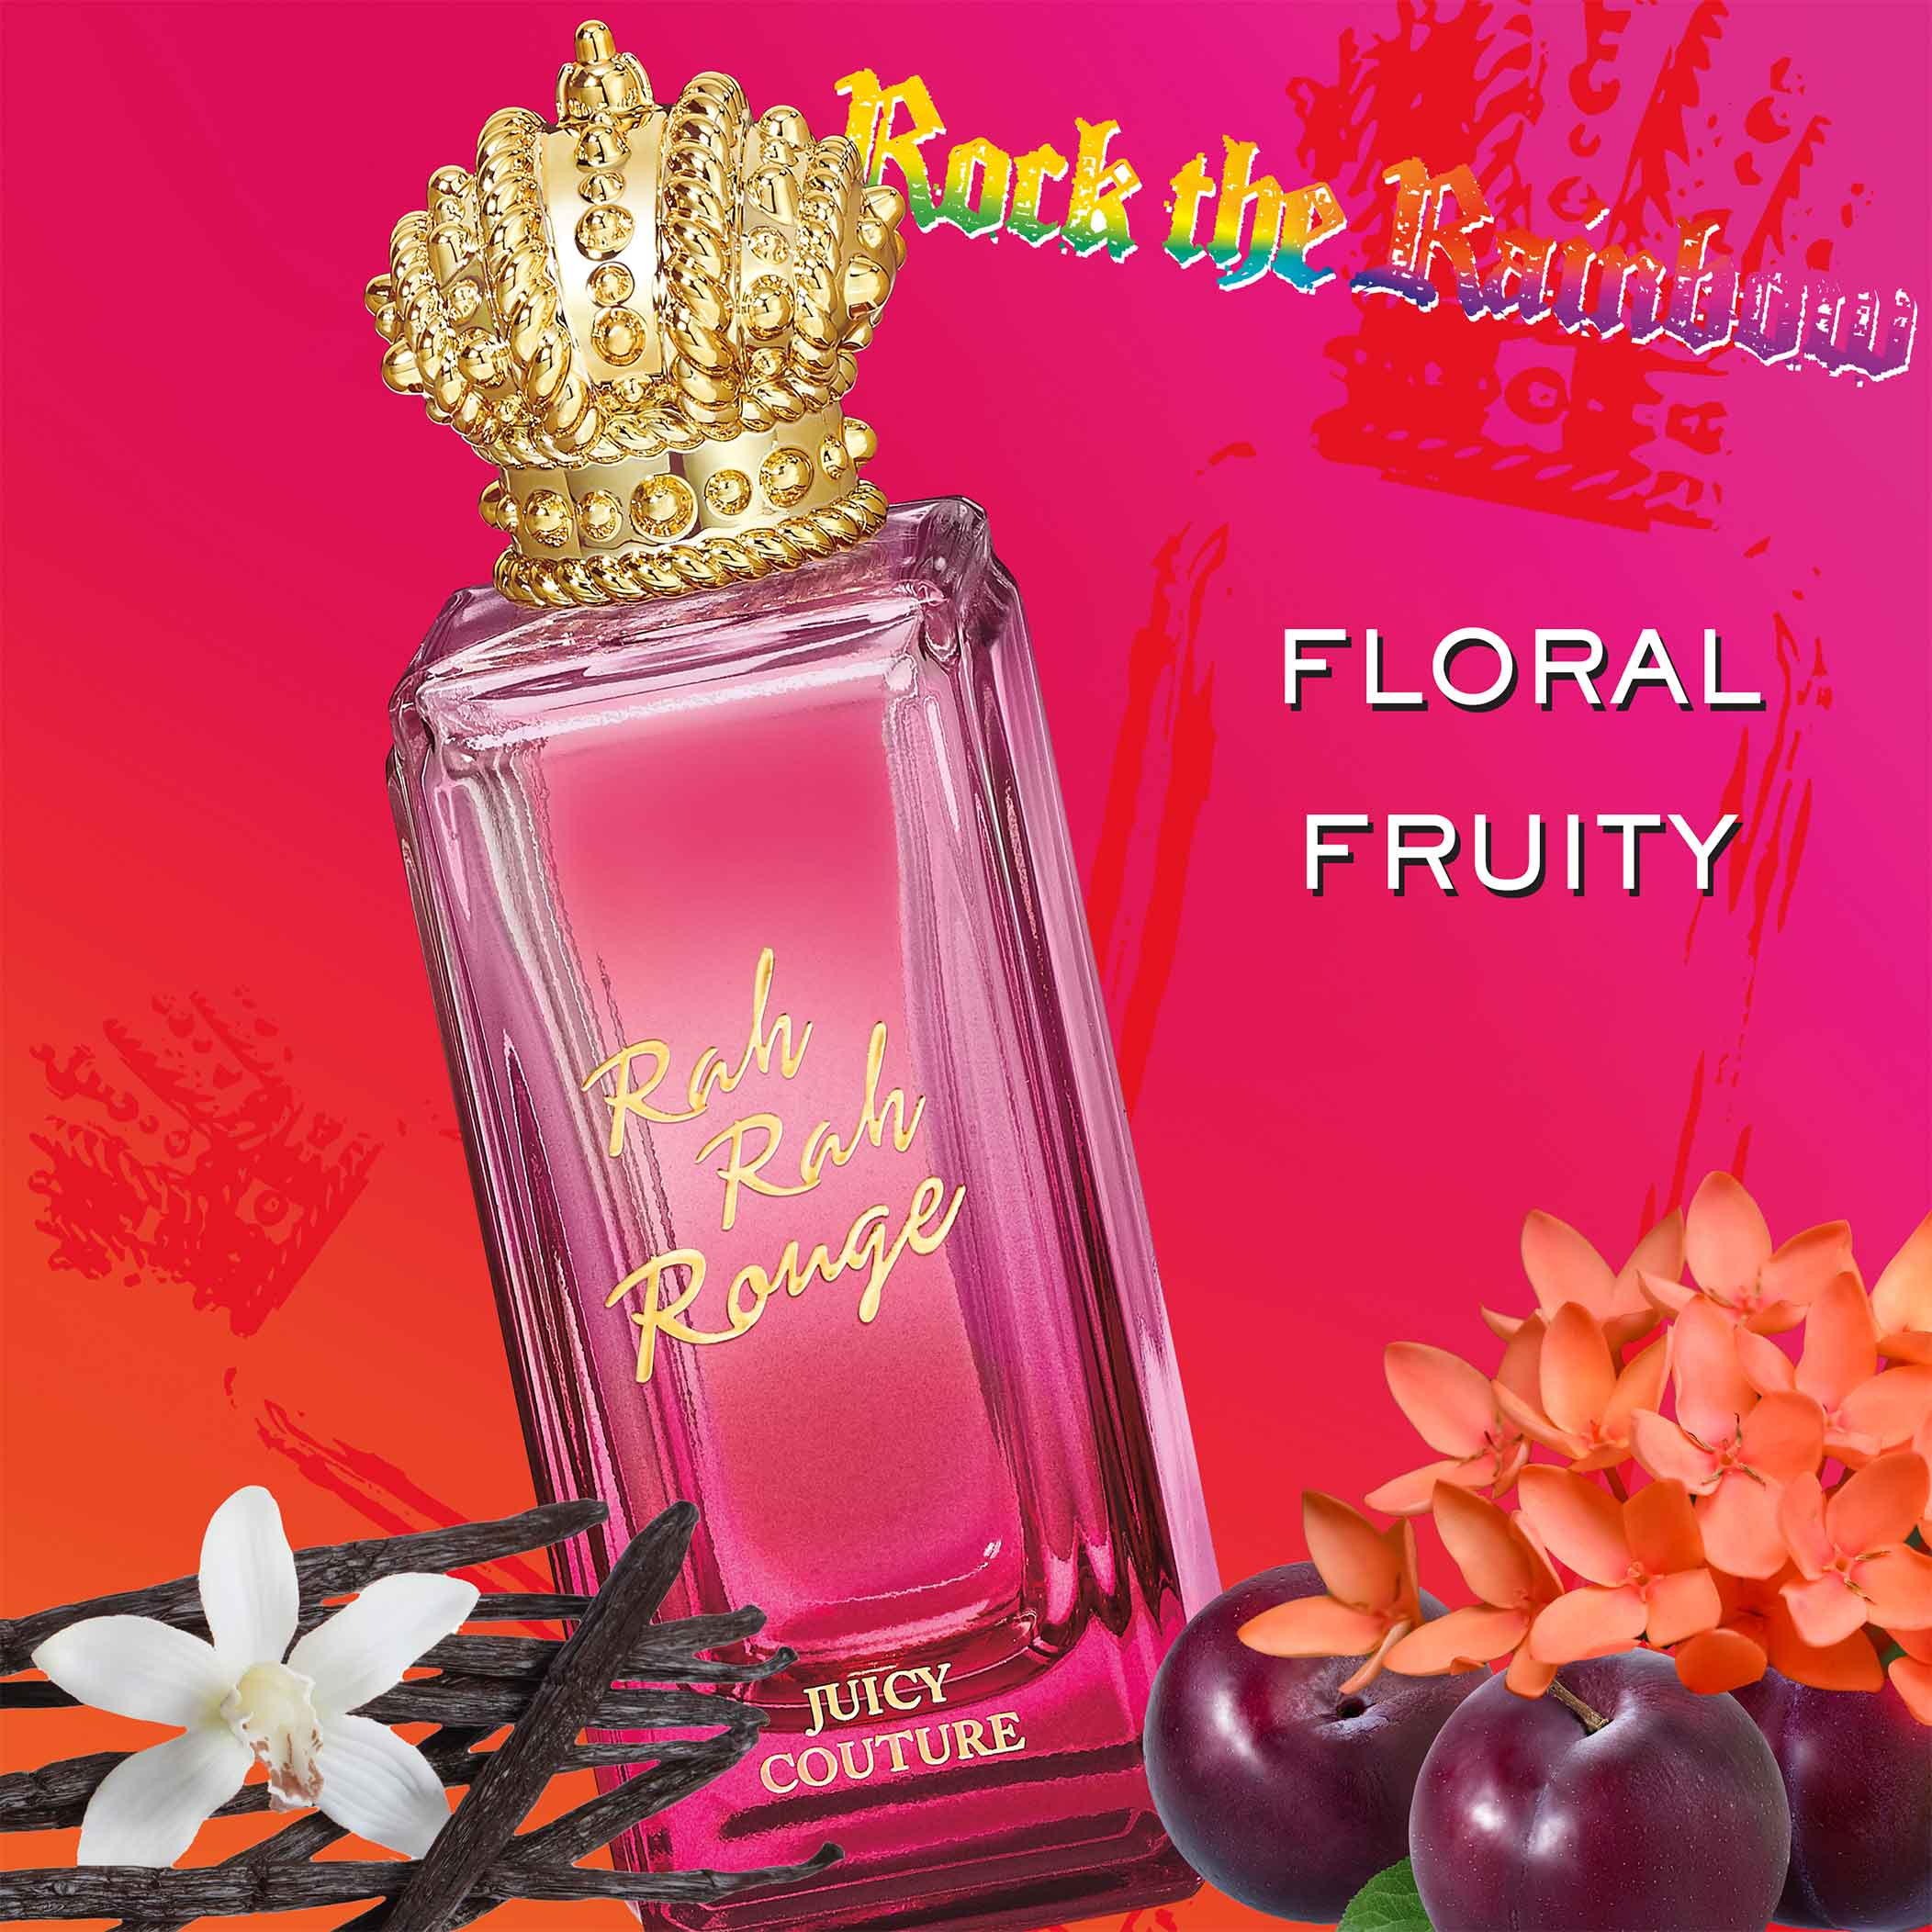 Notes: Floral, Fruity